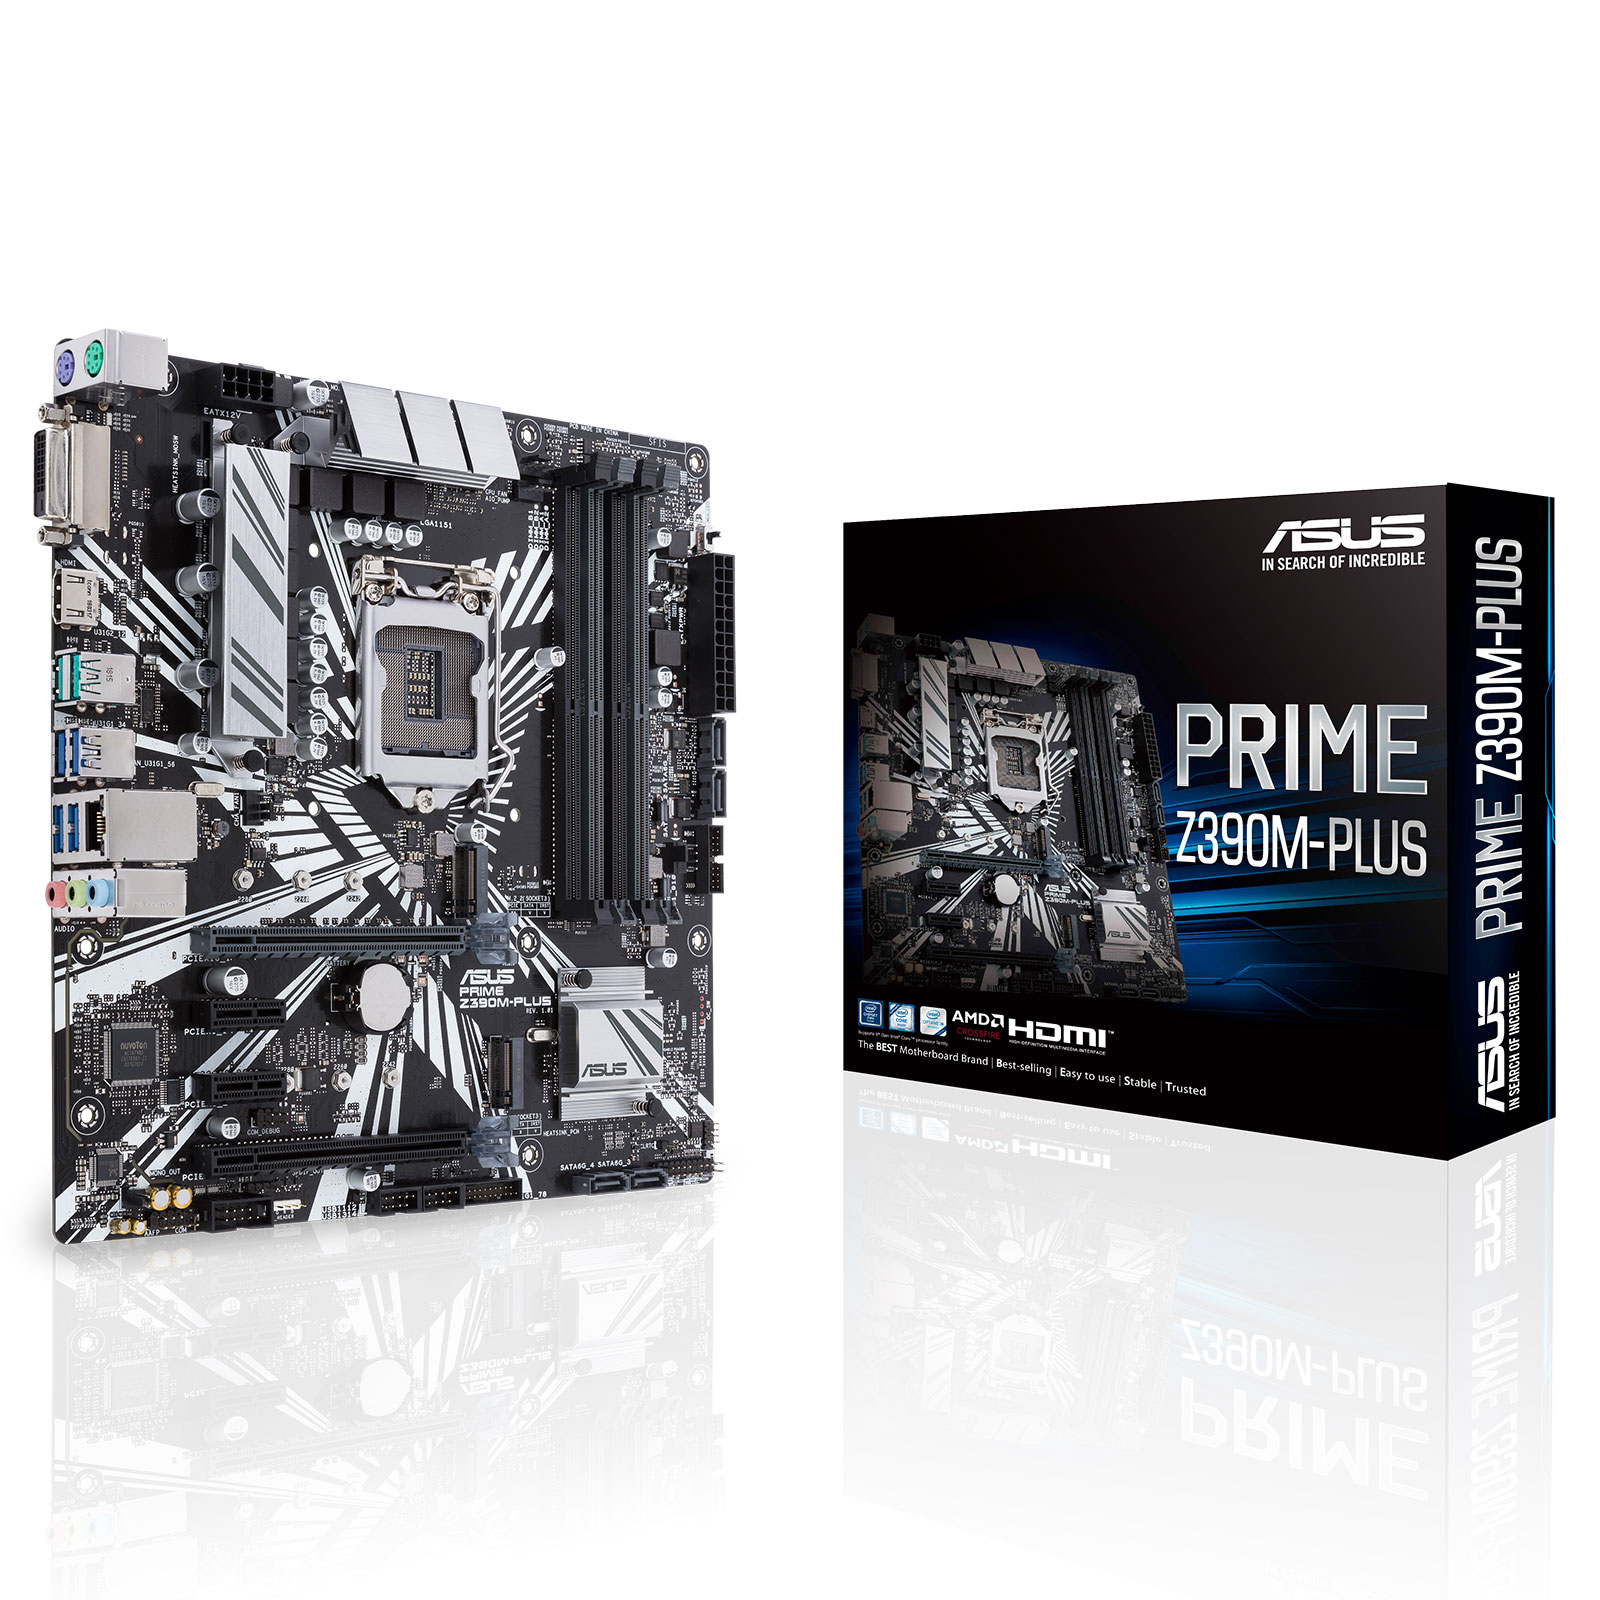 Carte mère ASUS PRIME Z390M-PLUS Carte mère Micro ATX Socket 1151 Intel Z390 Express - 4x DDR4 - SATA 6Gb/s + M.2 - USB 3.1 - 2x PCI-Express 3.0 16x